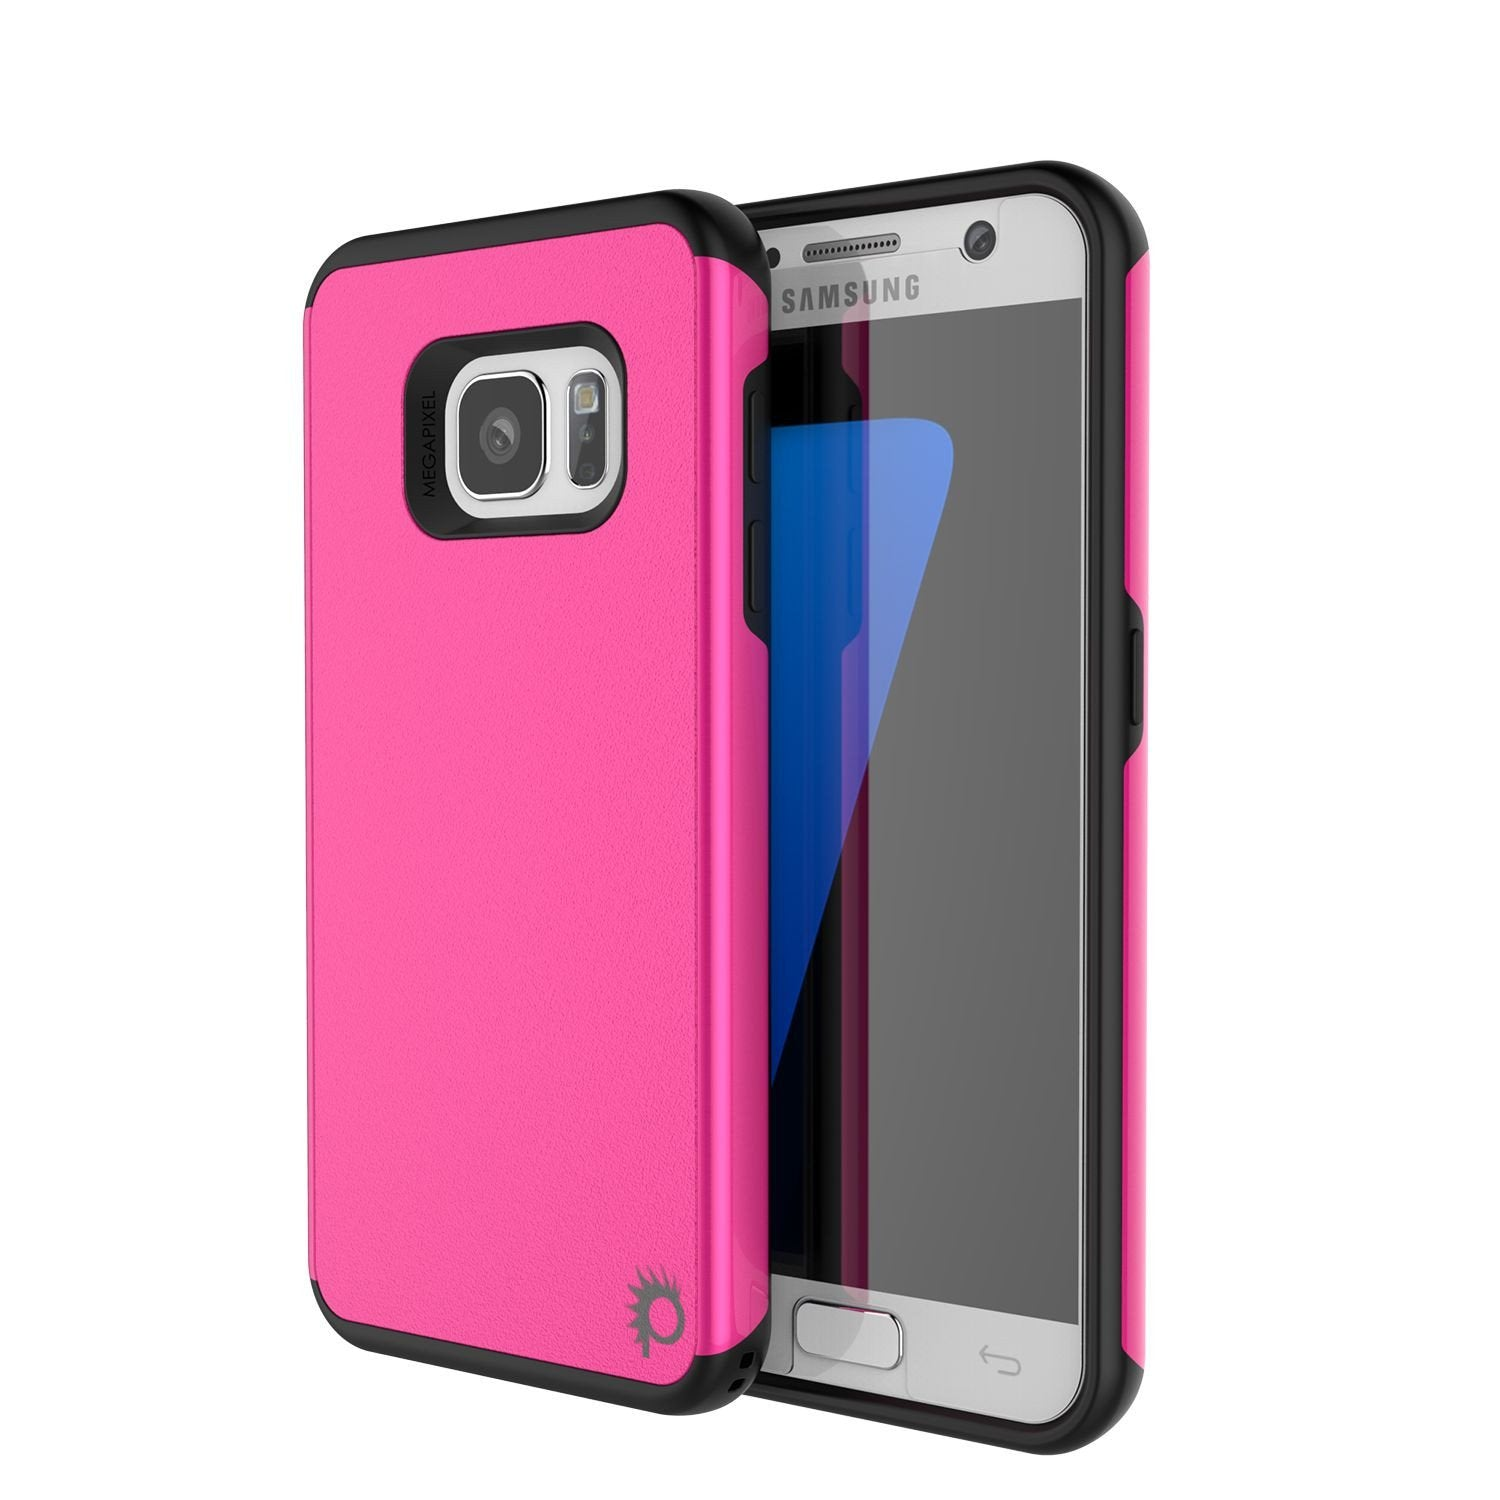 Galaxy s7 Case PunkCase Galactic Pink Series Slim Protective Armor Soft Cover Case w/ Tempered Glass